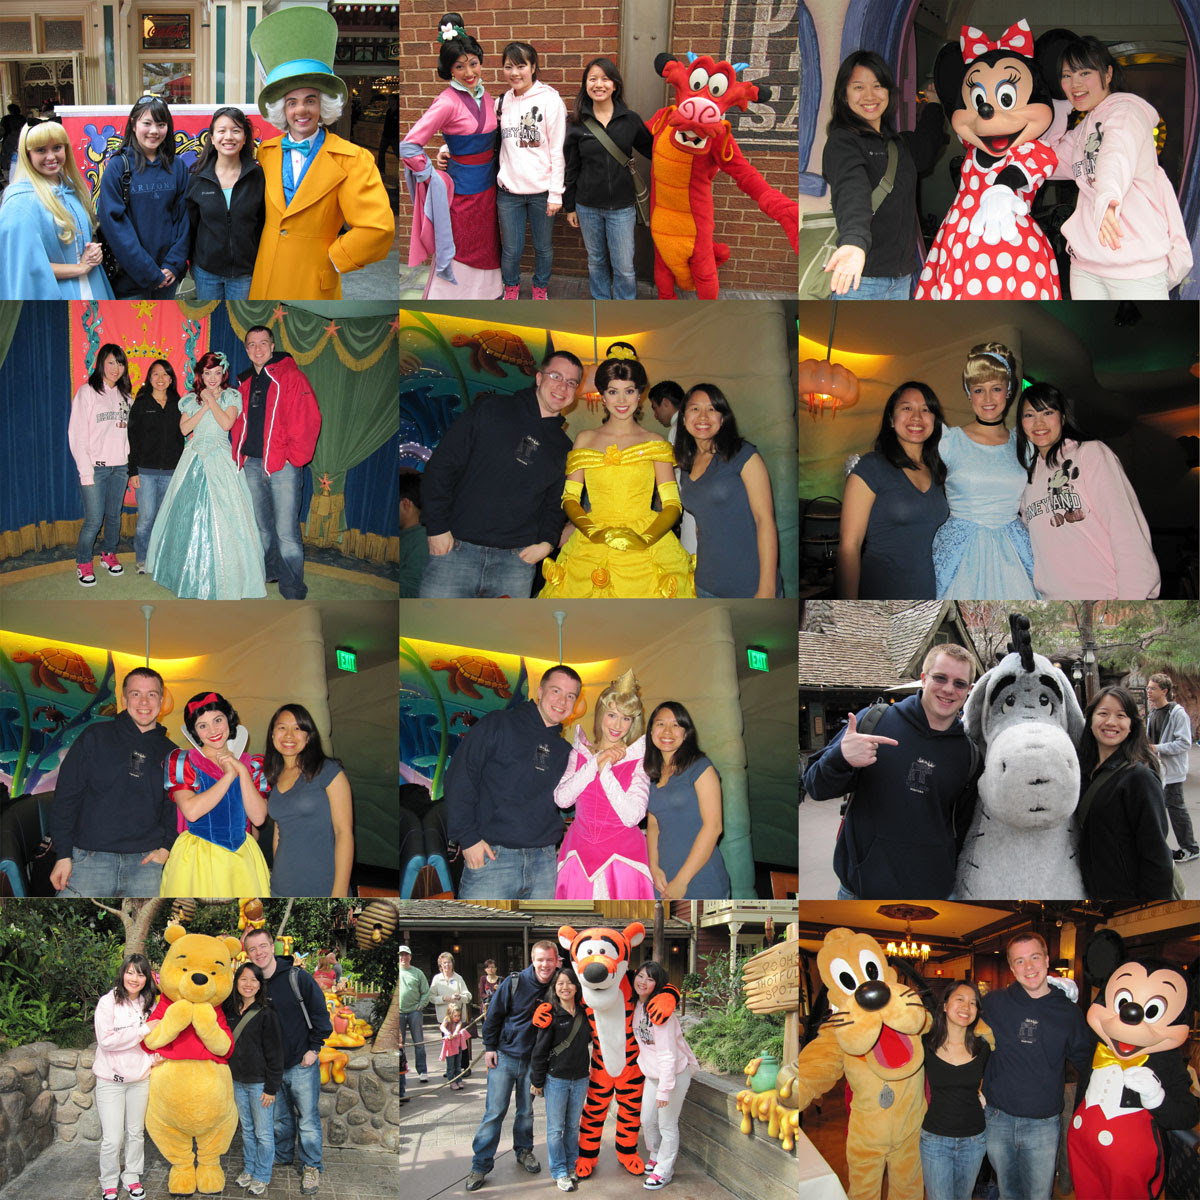 2010.02DisneyCharacterCollage